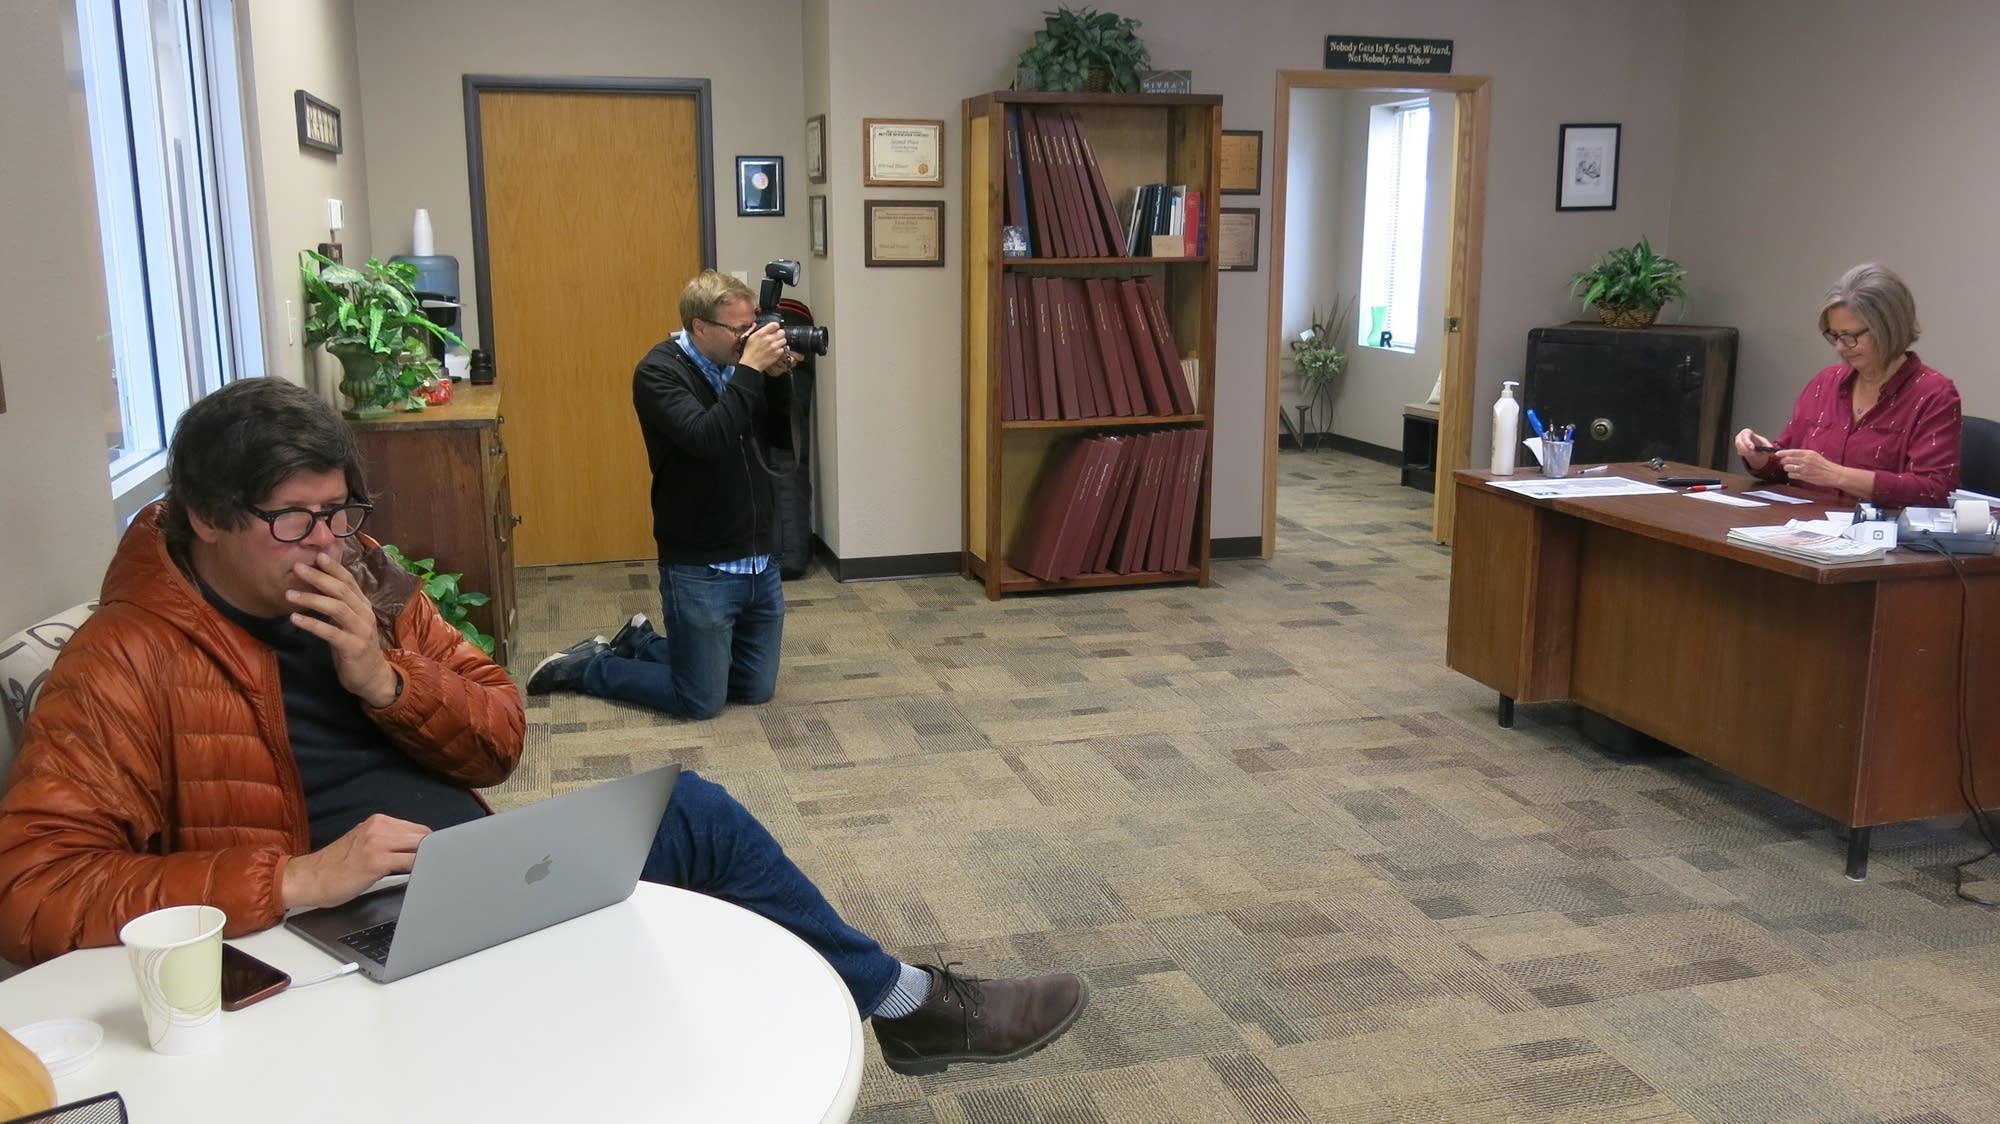 Warroad Pioneer publisher Rebecca Colden does some final paperwork.